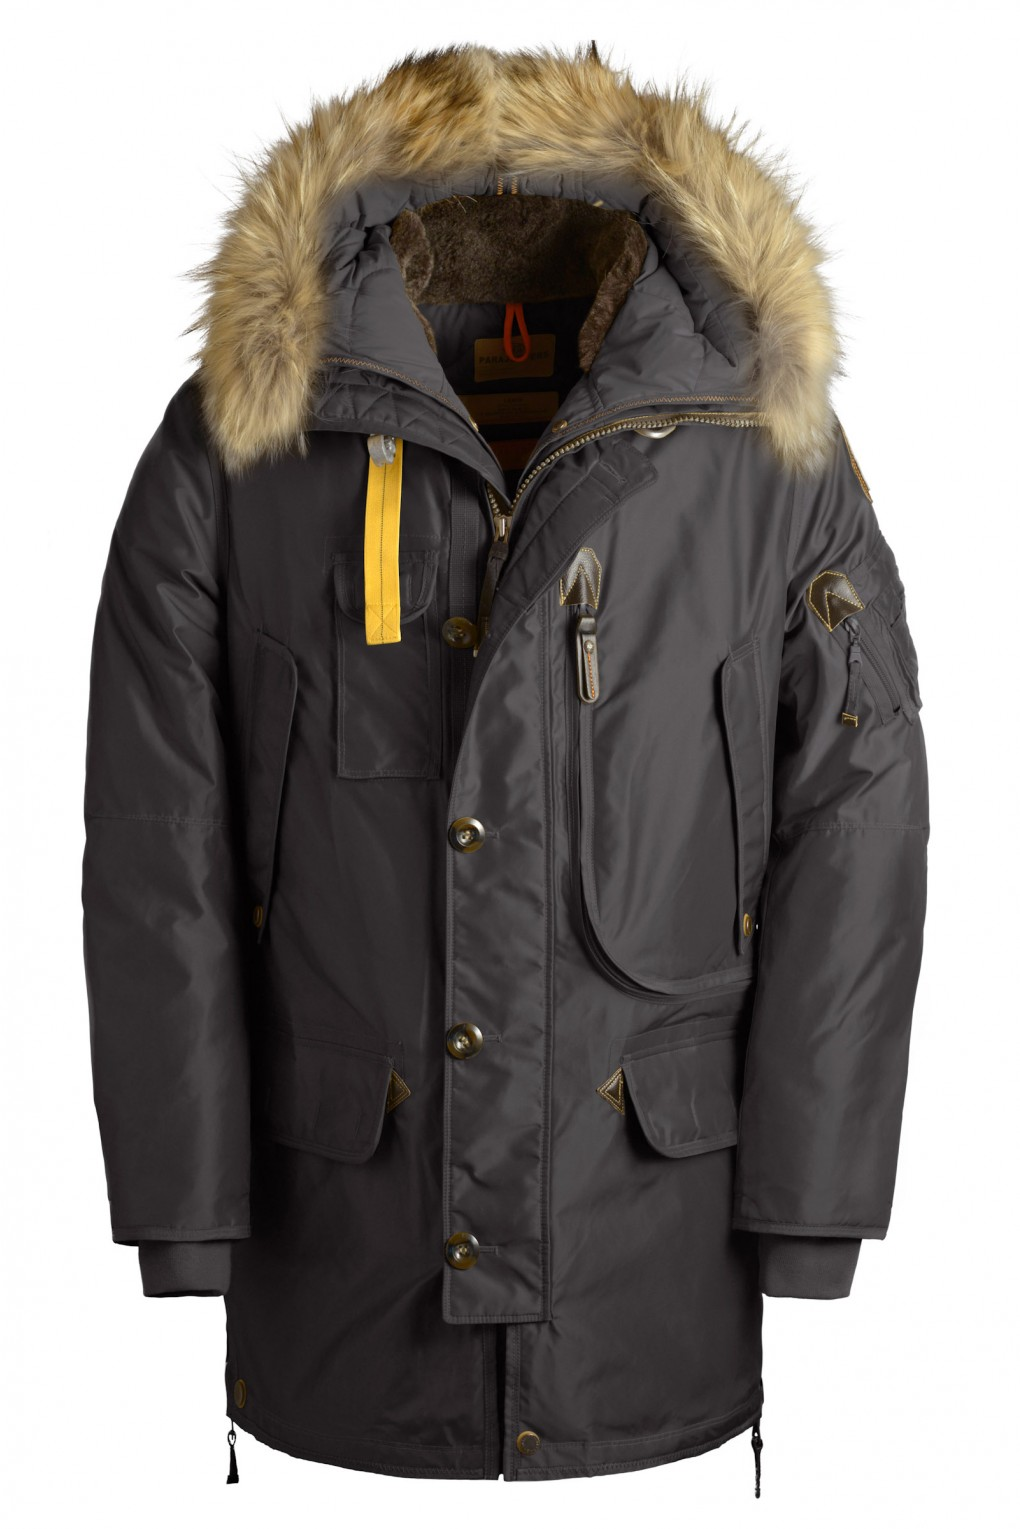 parajumpers KODIAK man outerwear Brown